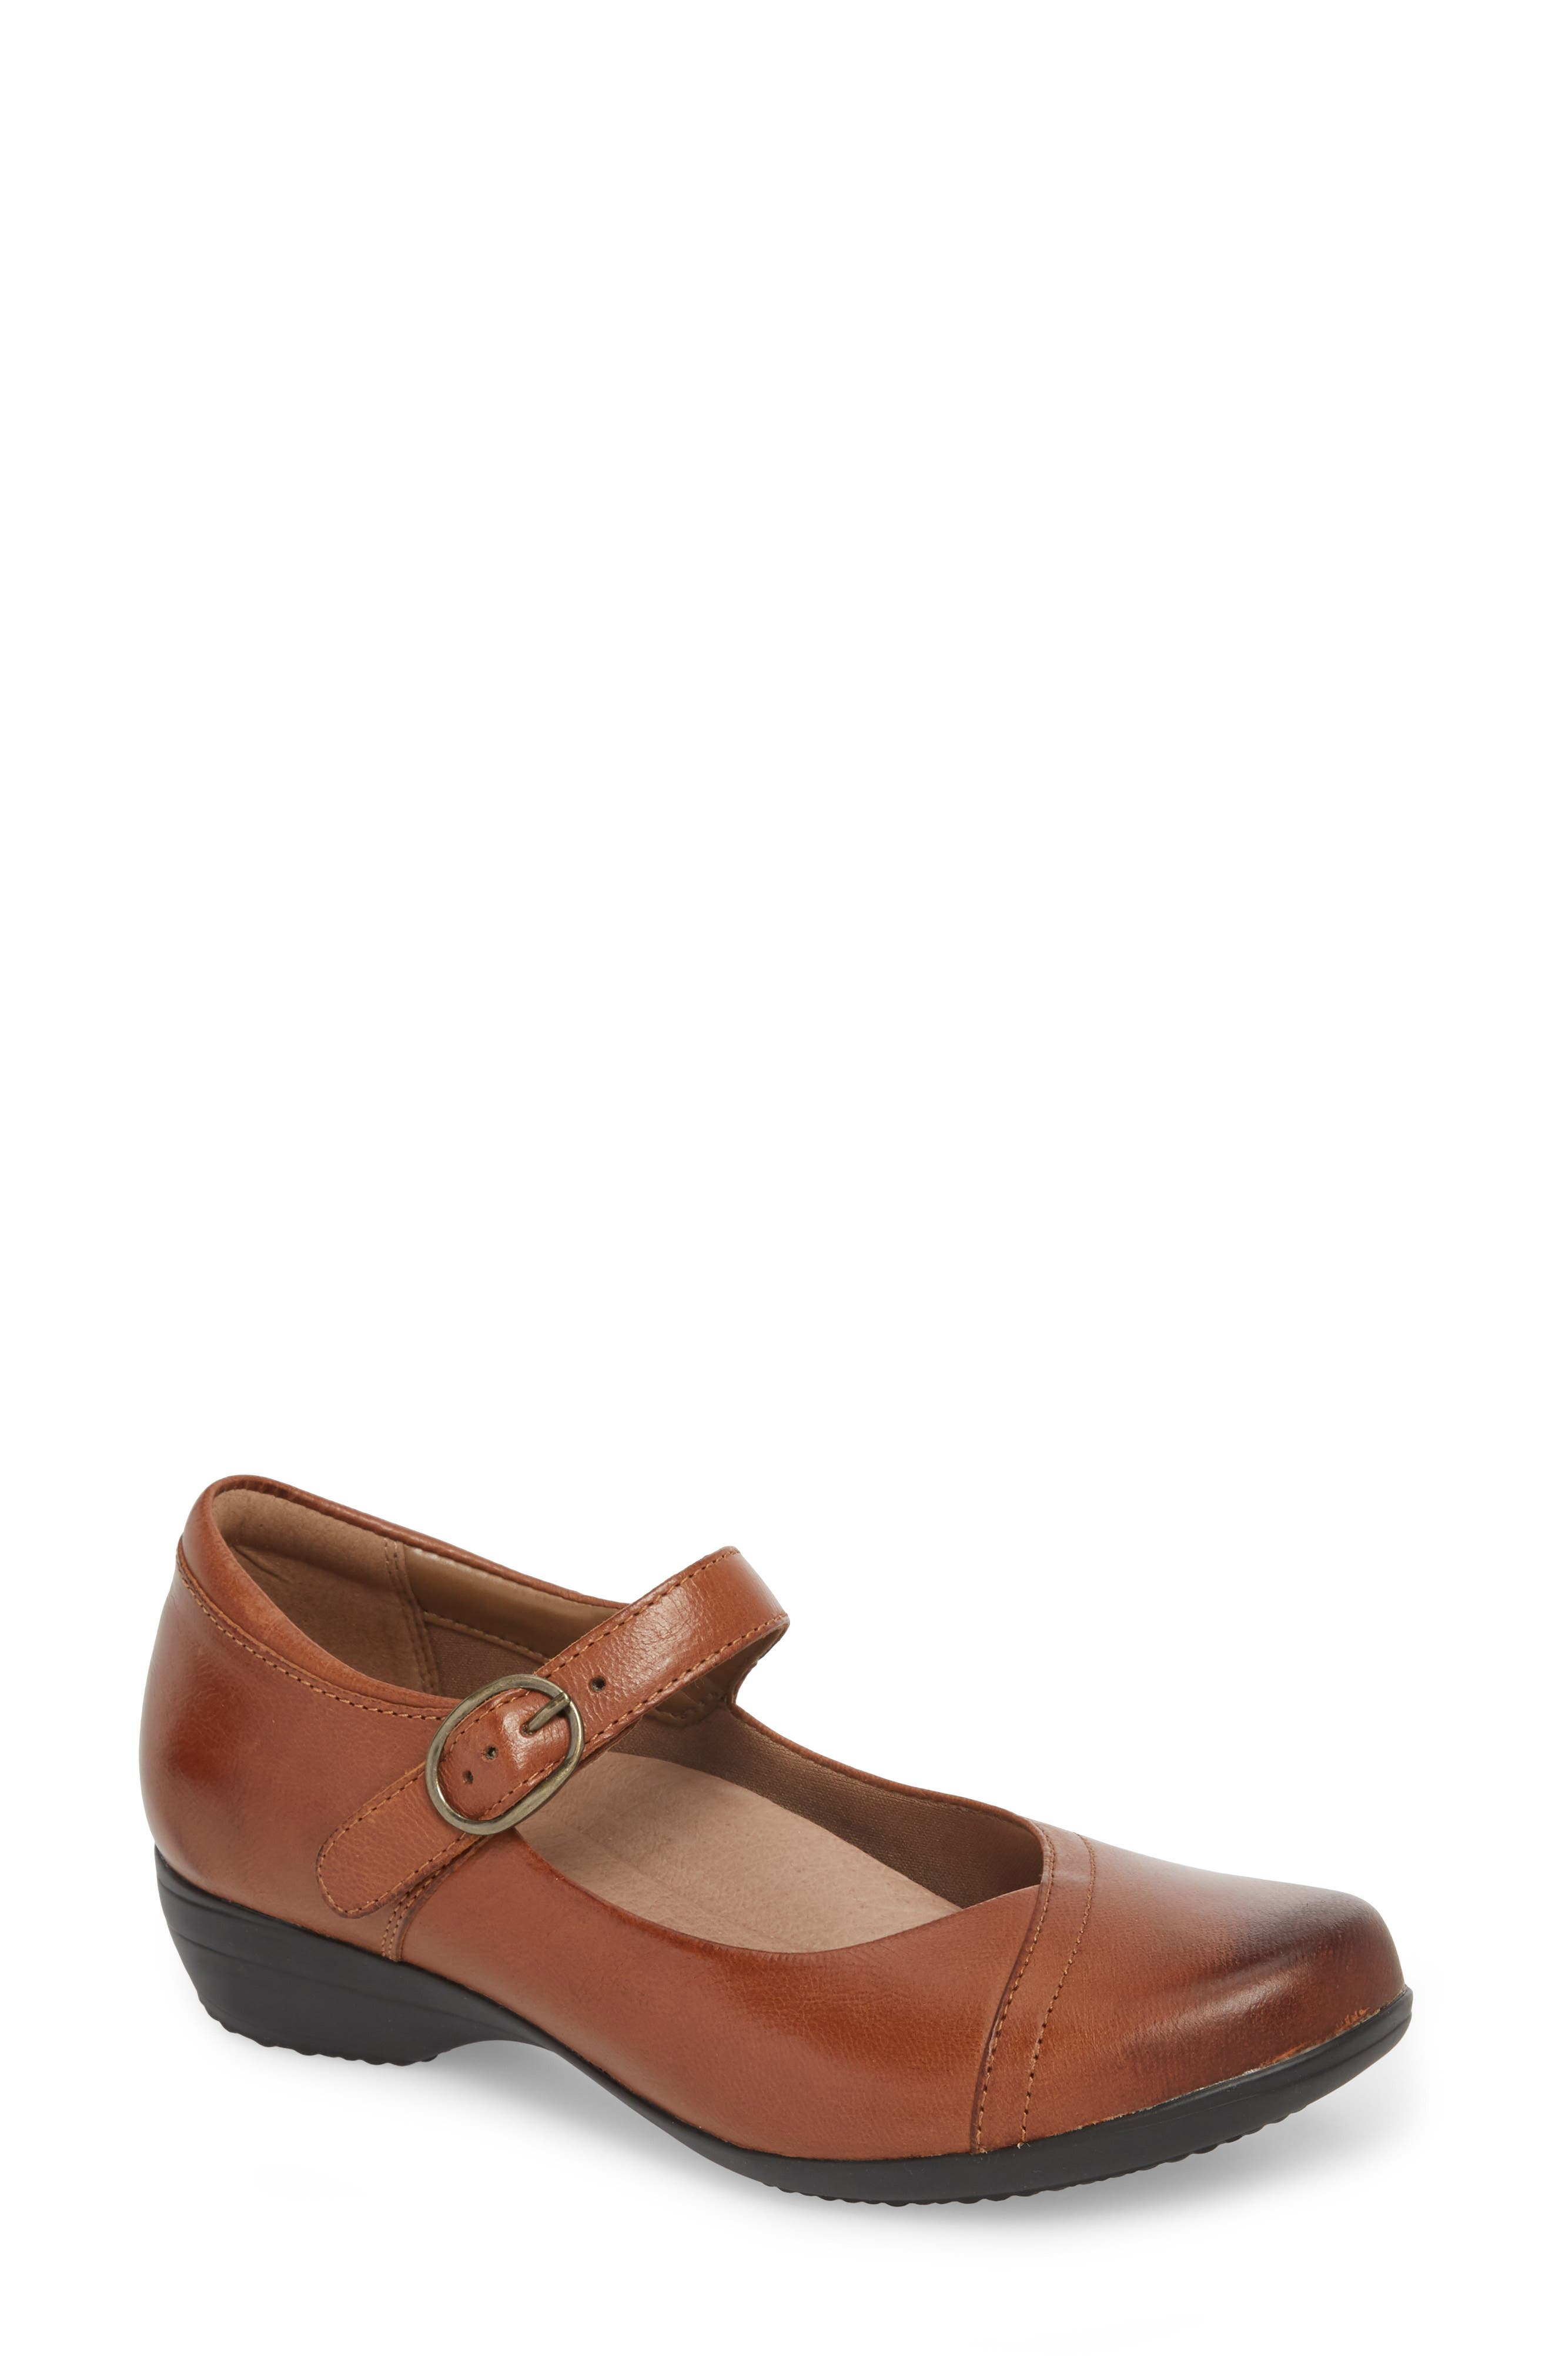 Fawna Mary Jane Flat,                         Main,                         color, Chestnut Leather